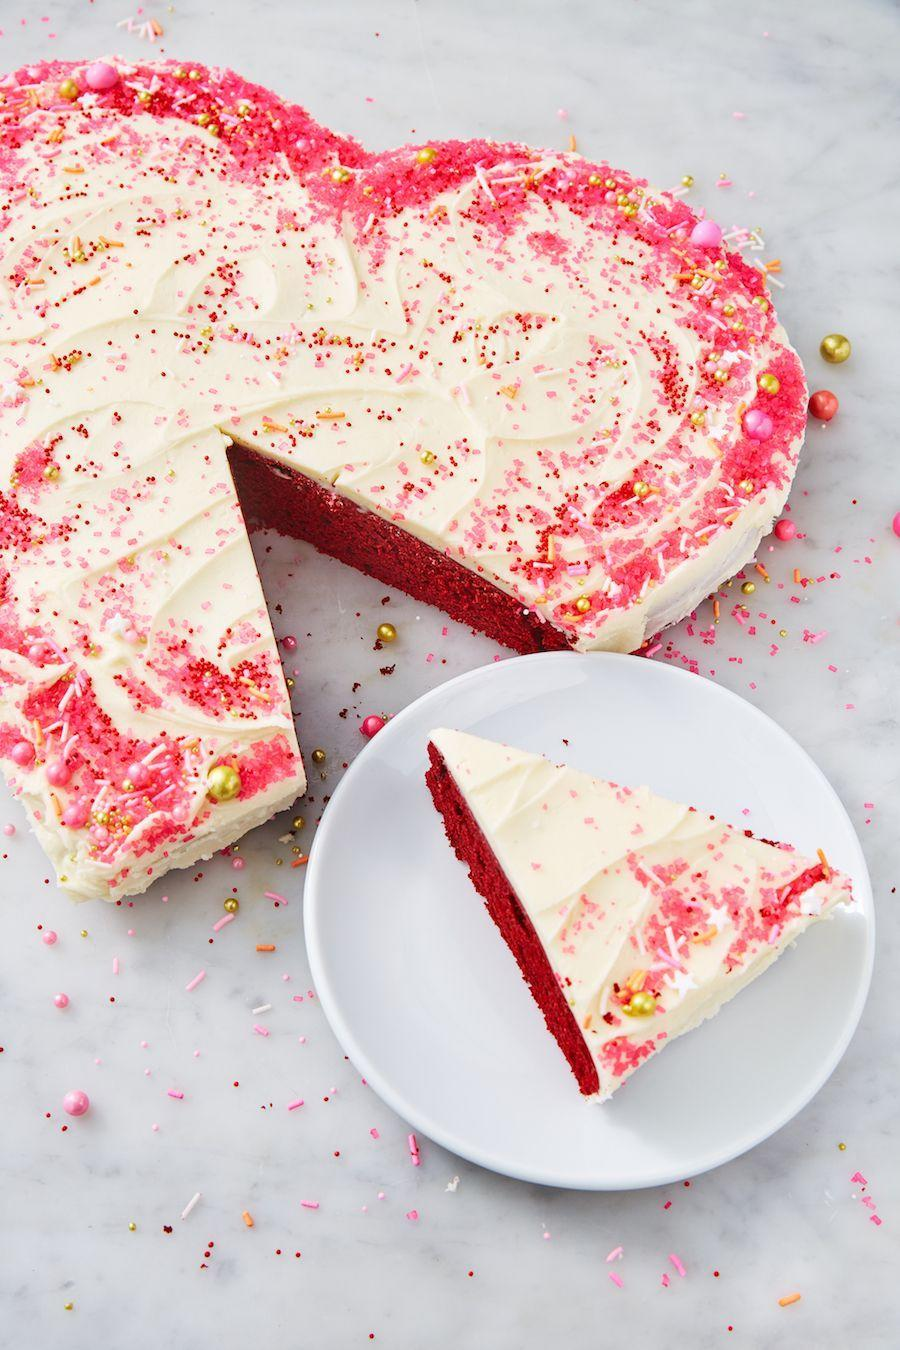 "<p>Cream cheese frosting? Yes please.</p><p>Get the recipe from <a href=""https://www.delish.com/cooking/recipe-ideas/a25846375/heart-shaped-cake-recipe/"" rel=""nofollow noopener"" target=""_blank"" data-ylk=""slk:Delish"" class=""link rapid-noclick-resp"">Delish</a>.</p>"